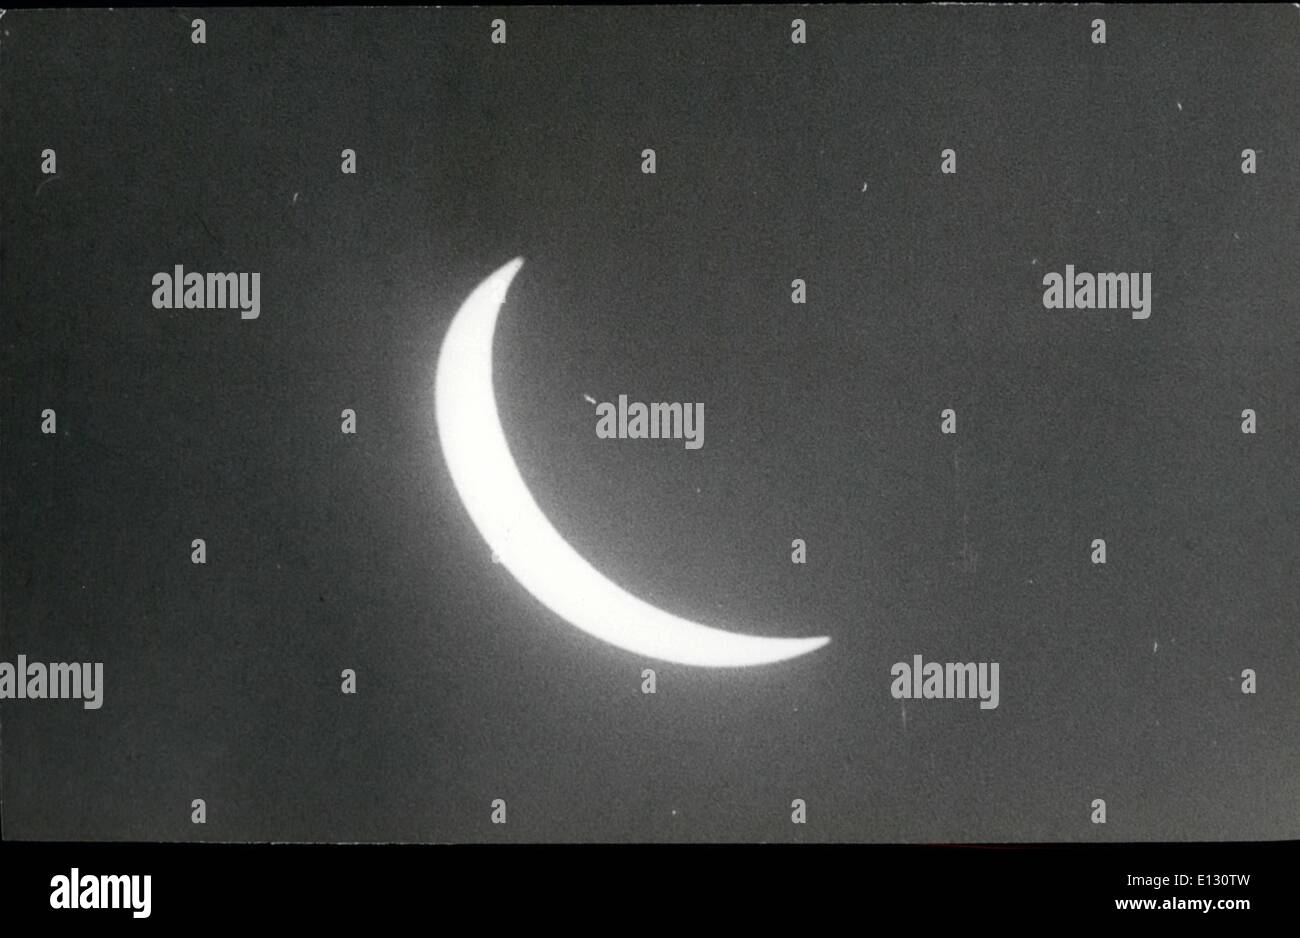 Feb. 26, 2012 - The maximum phase in which the solar eclipse was seen in Cuba. Hour: 13.08. - Stock Image